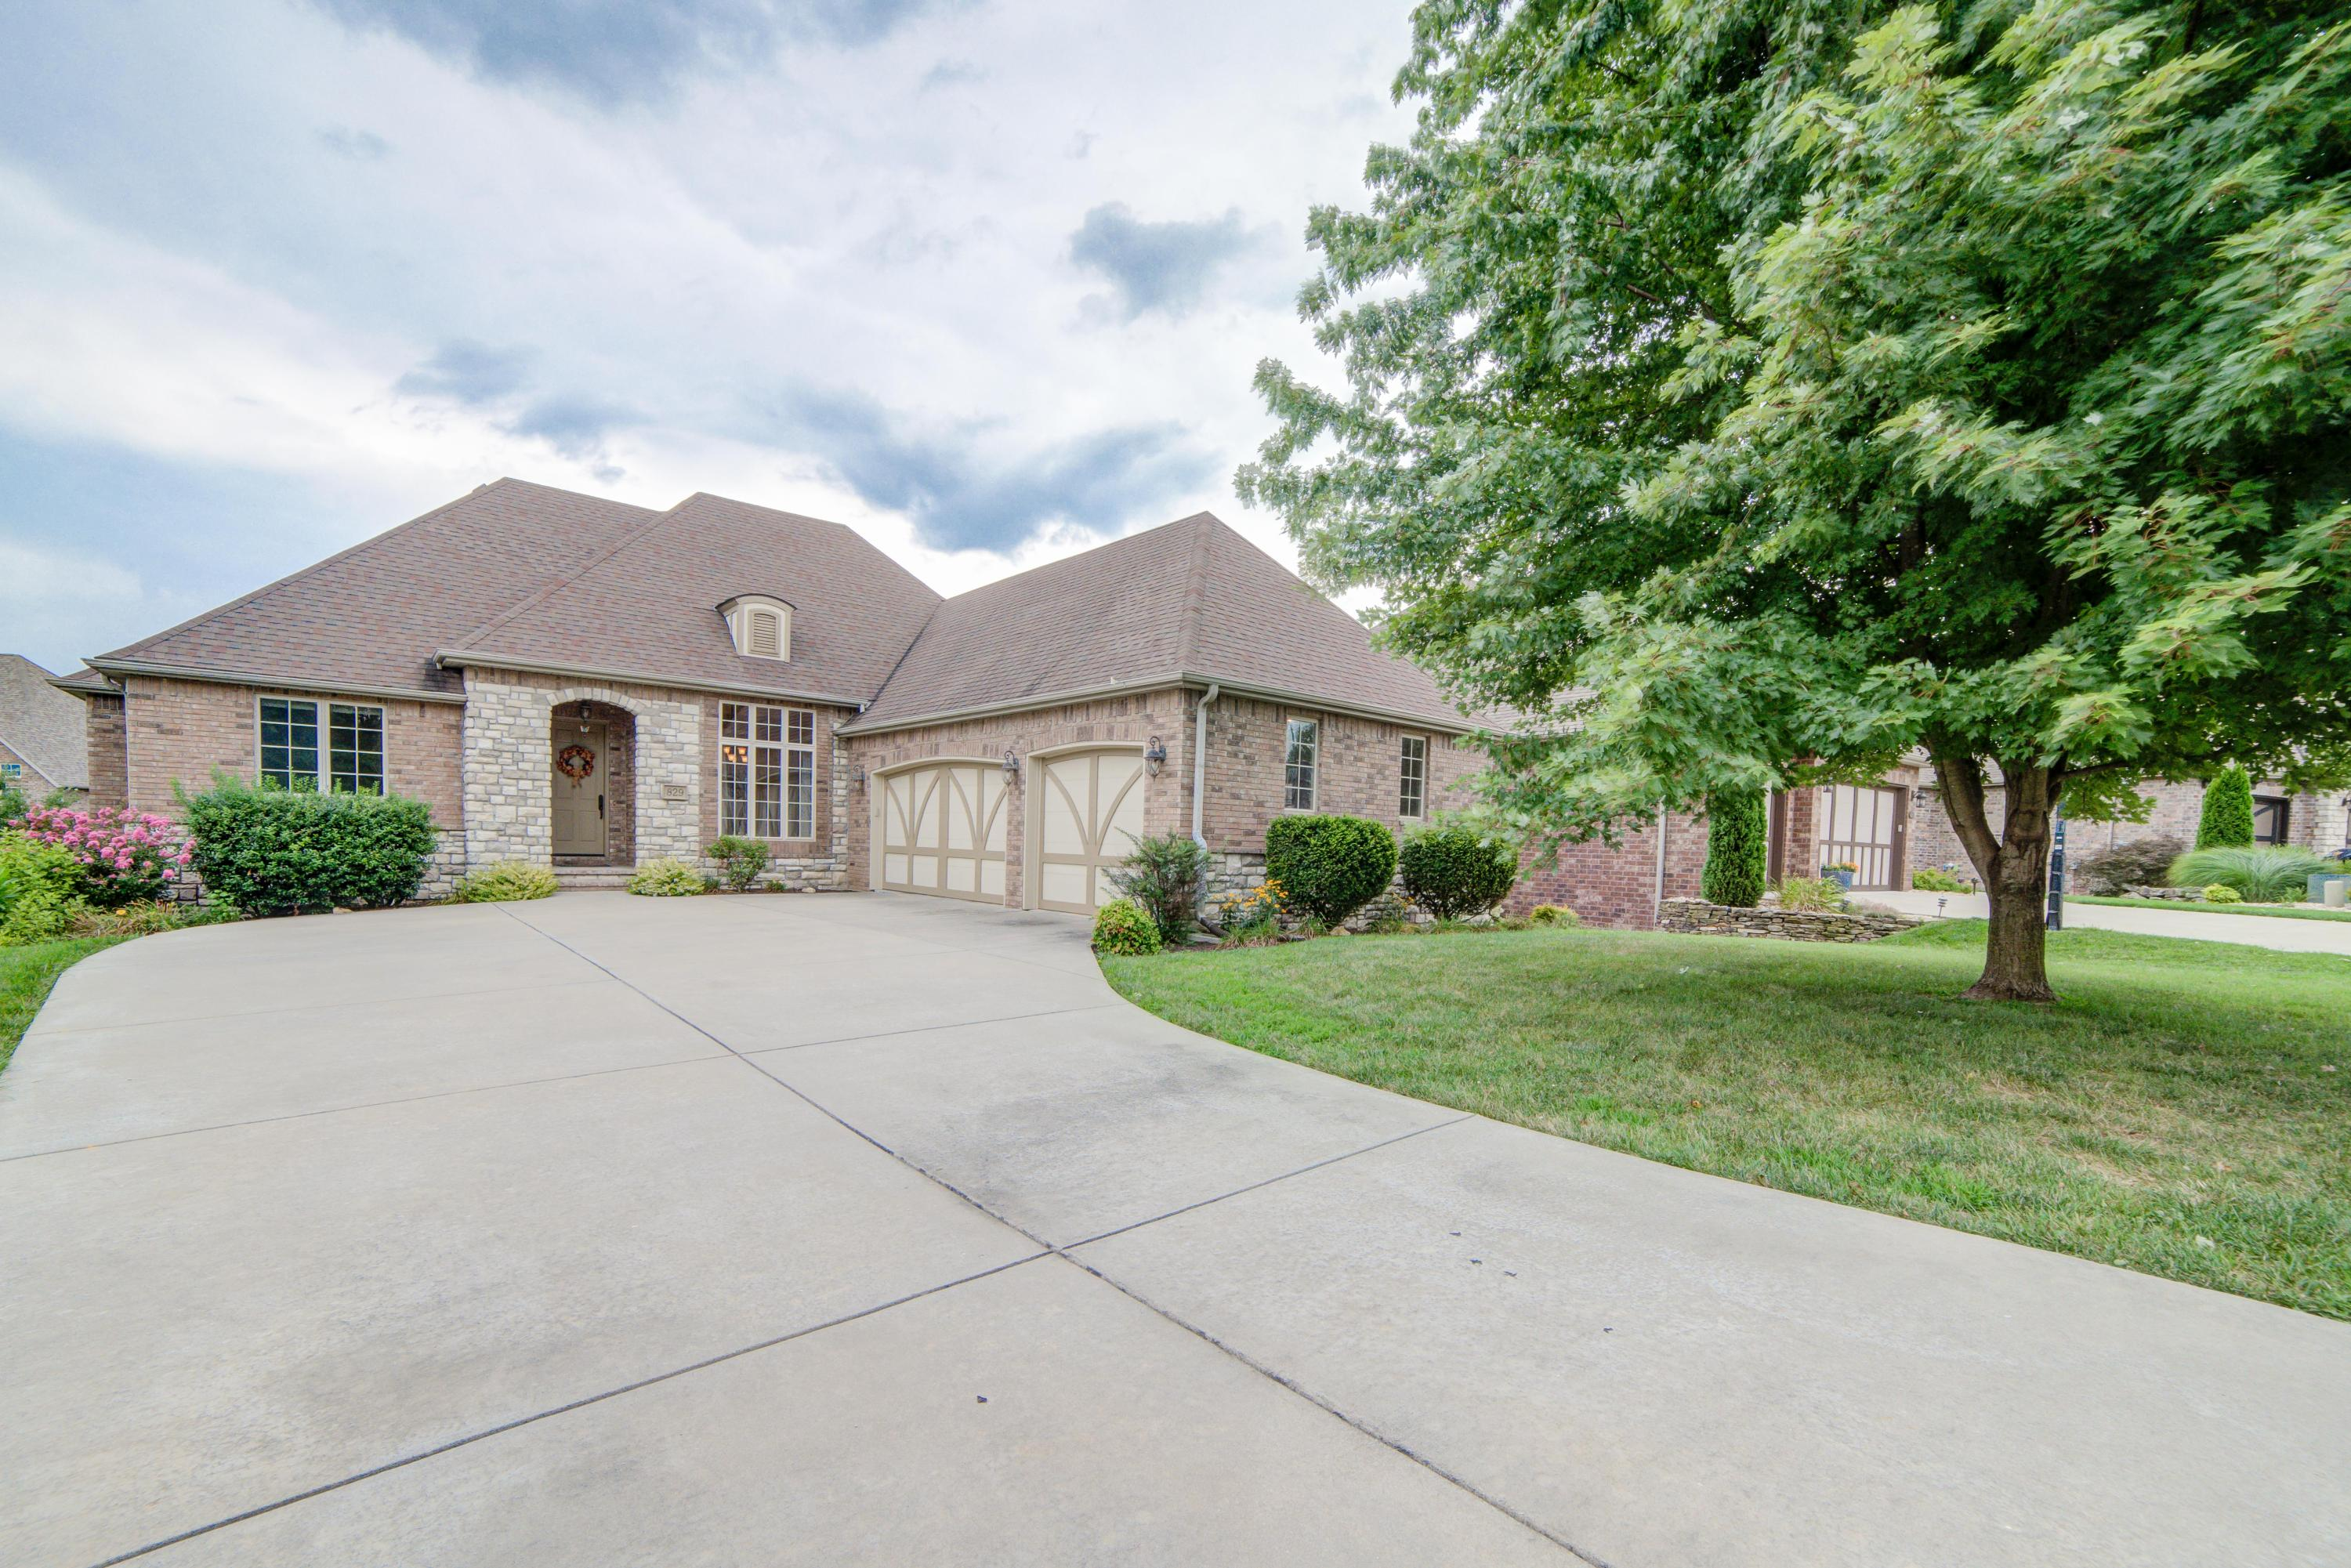 829 East Donegal Circle Nixa, MO 65714